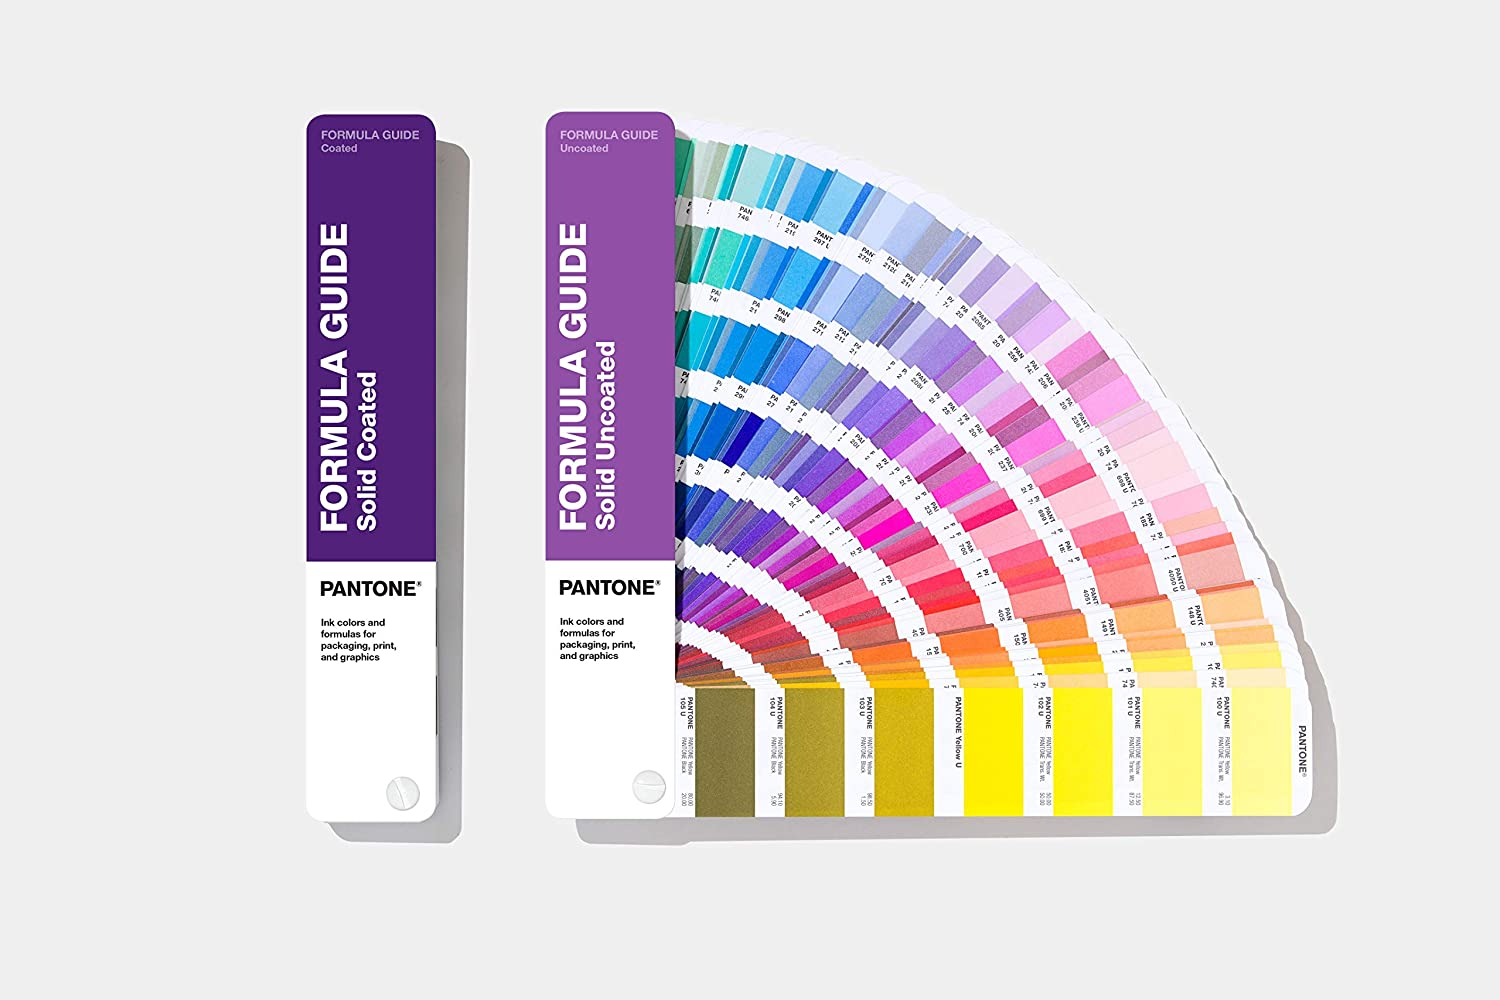 Pantone Formula Guide Coated & Uncoated - 2020 Edition